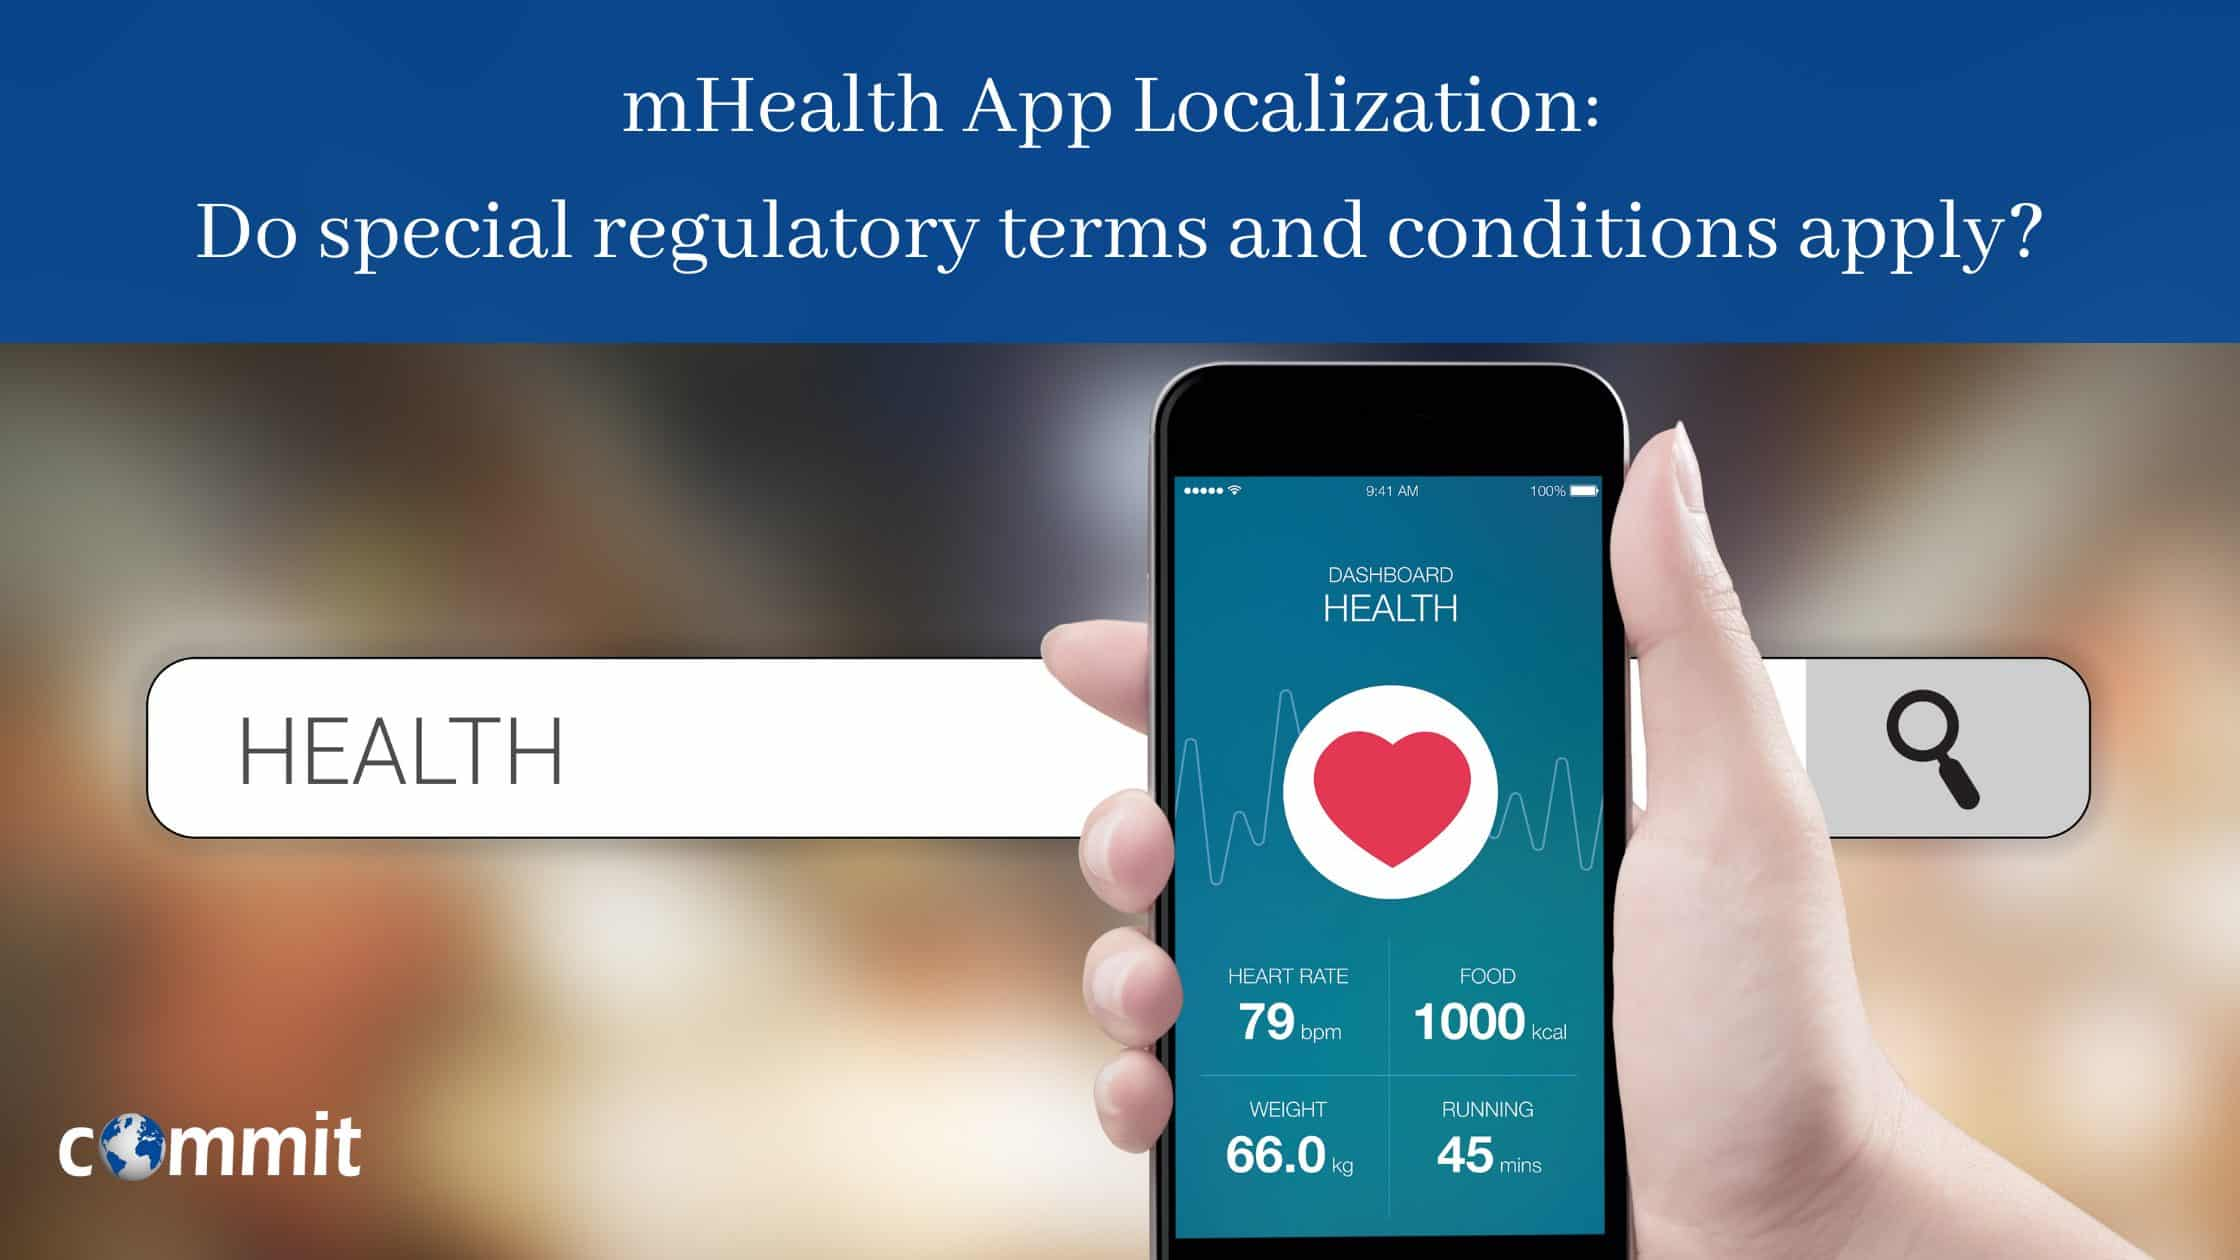 mHealth App Localization: Do special regulatory terms apply?